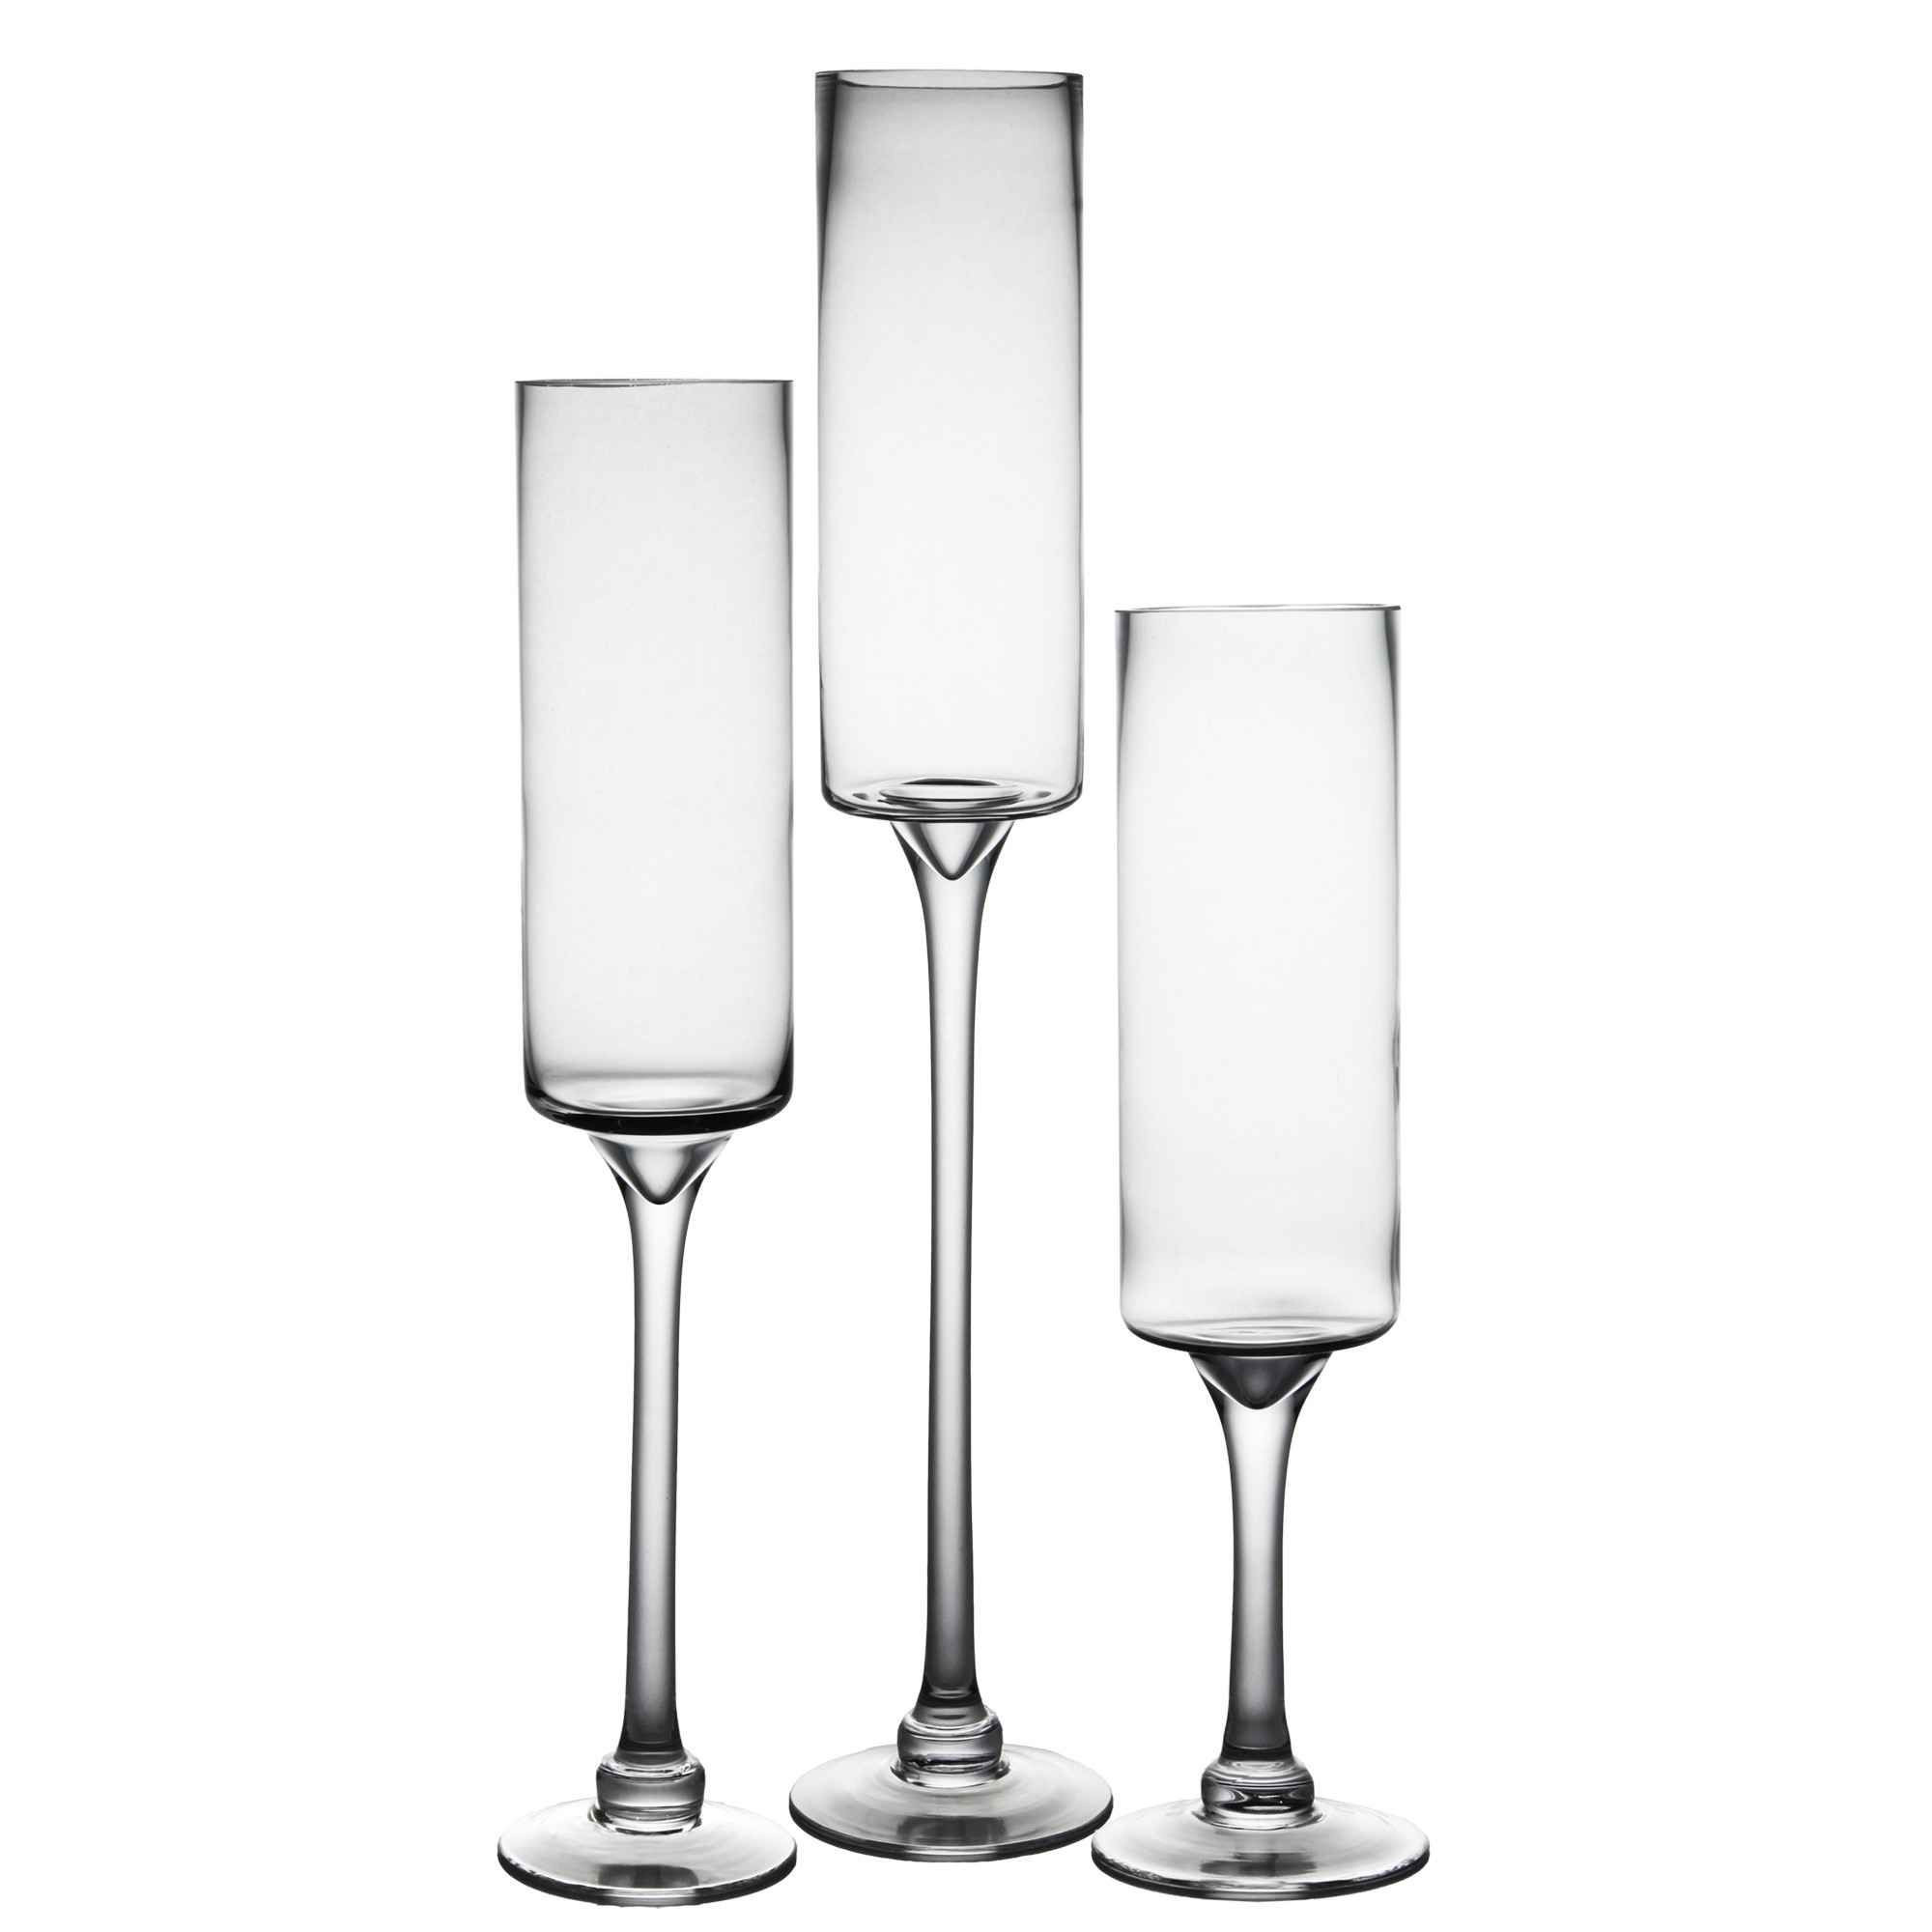 4 glass cube vase of big glass vase beautiful l h vases 12 inch hurricane clear glass with regard to big glass vase beautiful l h vases 12 inch hurricane clear glass vase i 0d cheap in